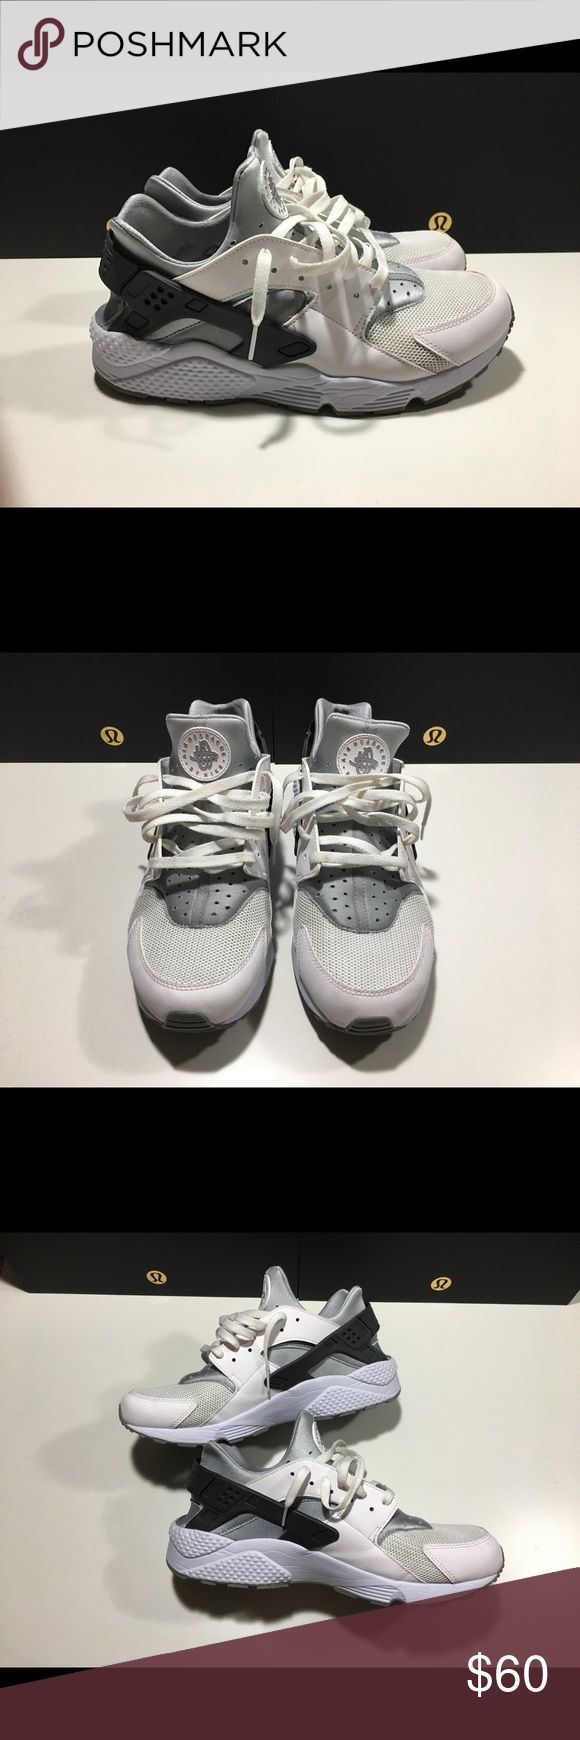 Men's Nike Air Huarache PRE OWNED White / Grey These are pre owned, I do not have the box for them, but I will double wrap them in bubble wrap and place them in a Nike bag prior to shipping them out. Unfortunately I'm not able to accommodate any trades, sorry. Thanks. Nike Shoes Athletic Shoes